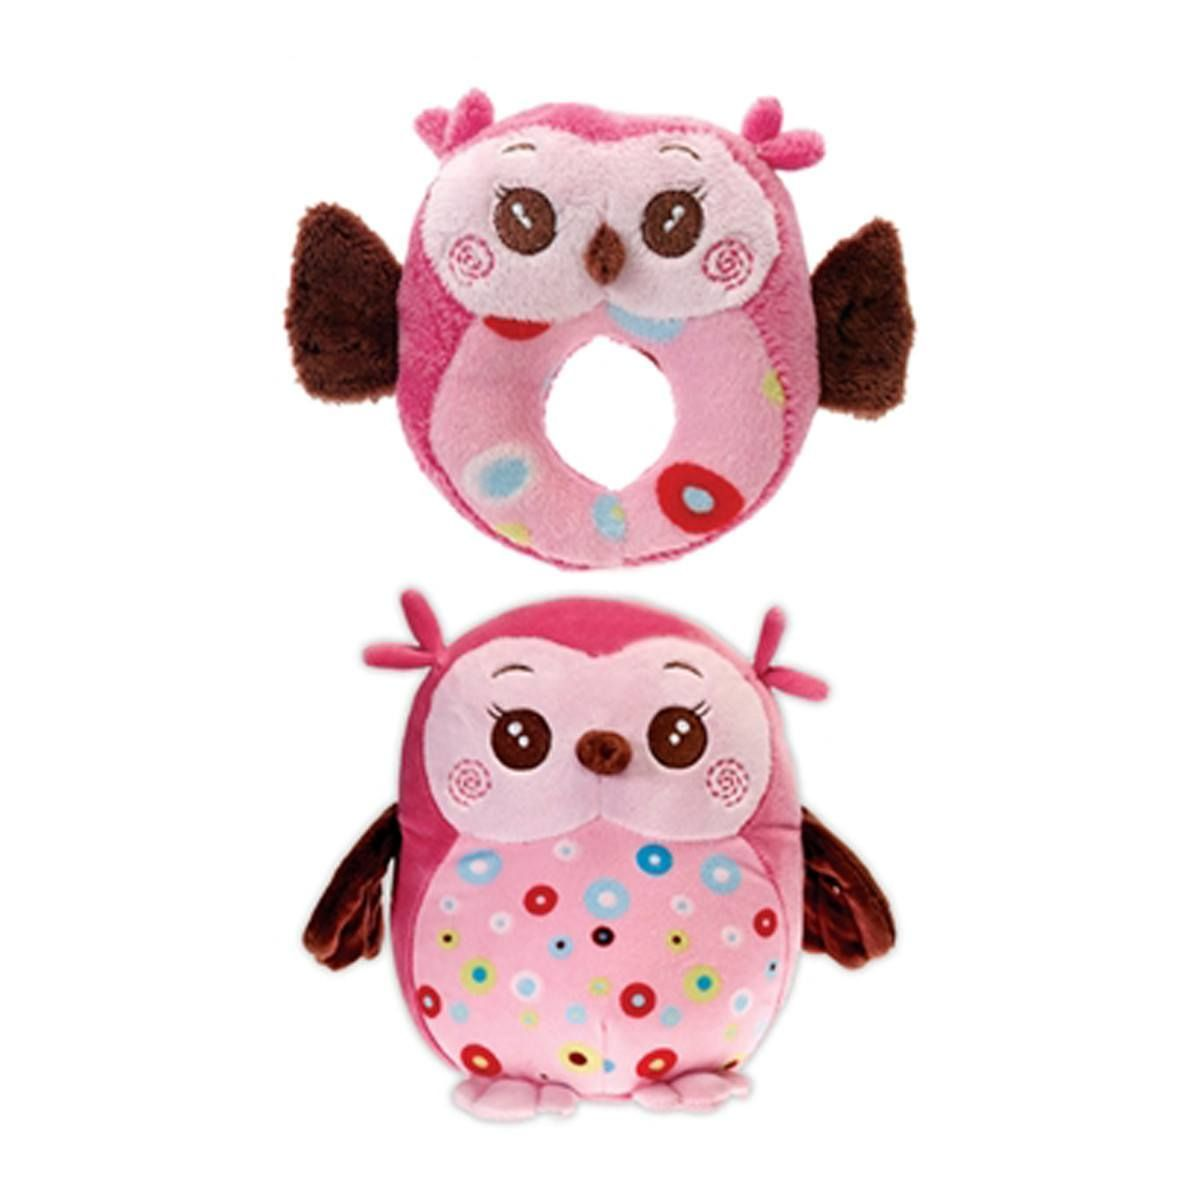 Hocus And Pocus Two Furrs Dog Toy Pink Owls Products